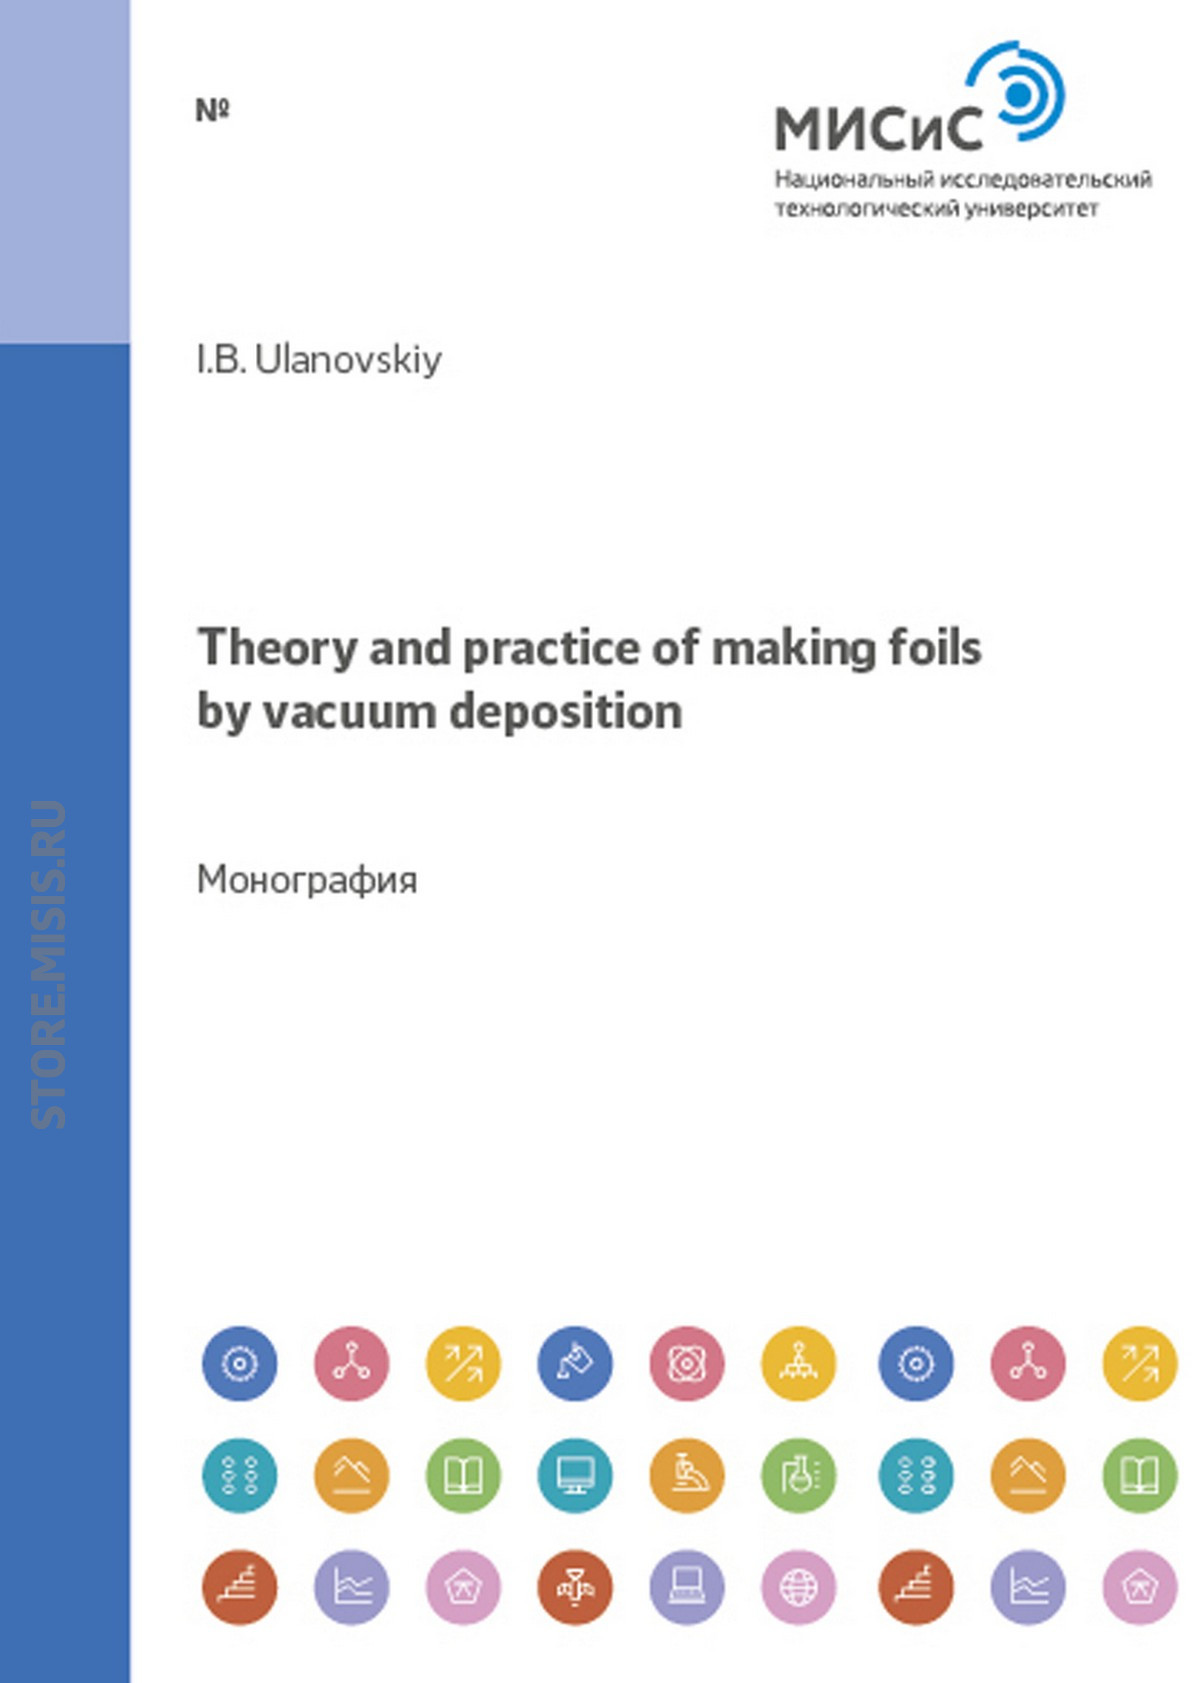 Ulanovskiy I. B. Theory and Practice of Making Foils By Vacuum Deposition